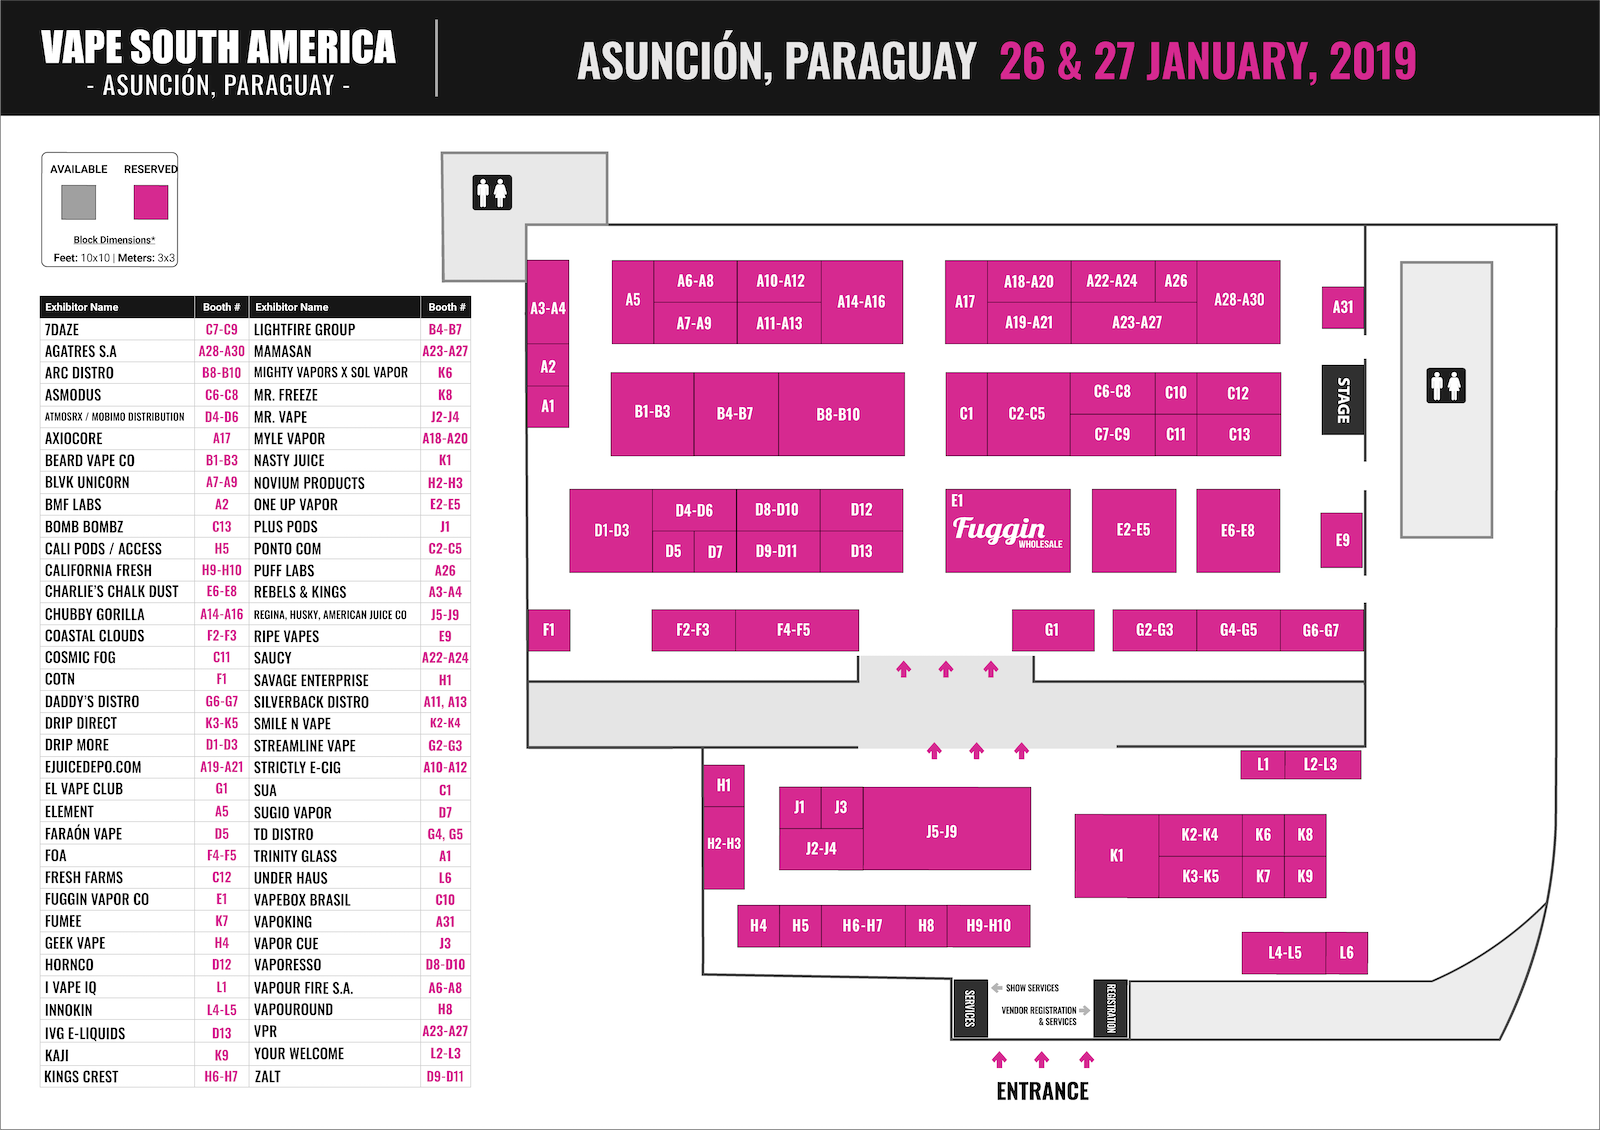 Booth Map - Vape South America Expo 2019 in Asuncion Paraguay